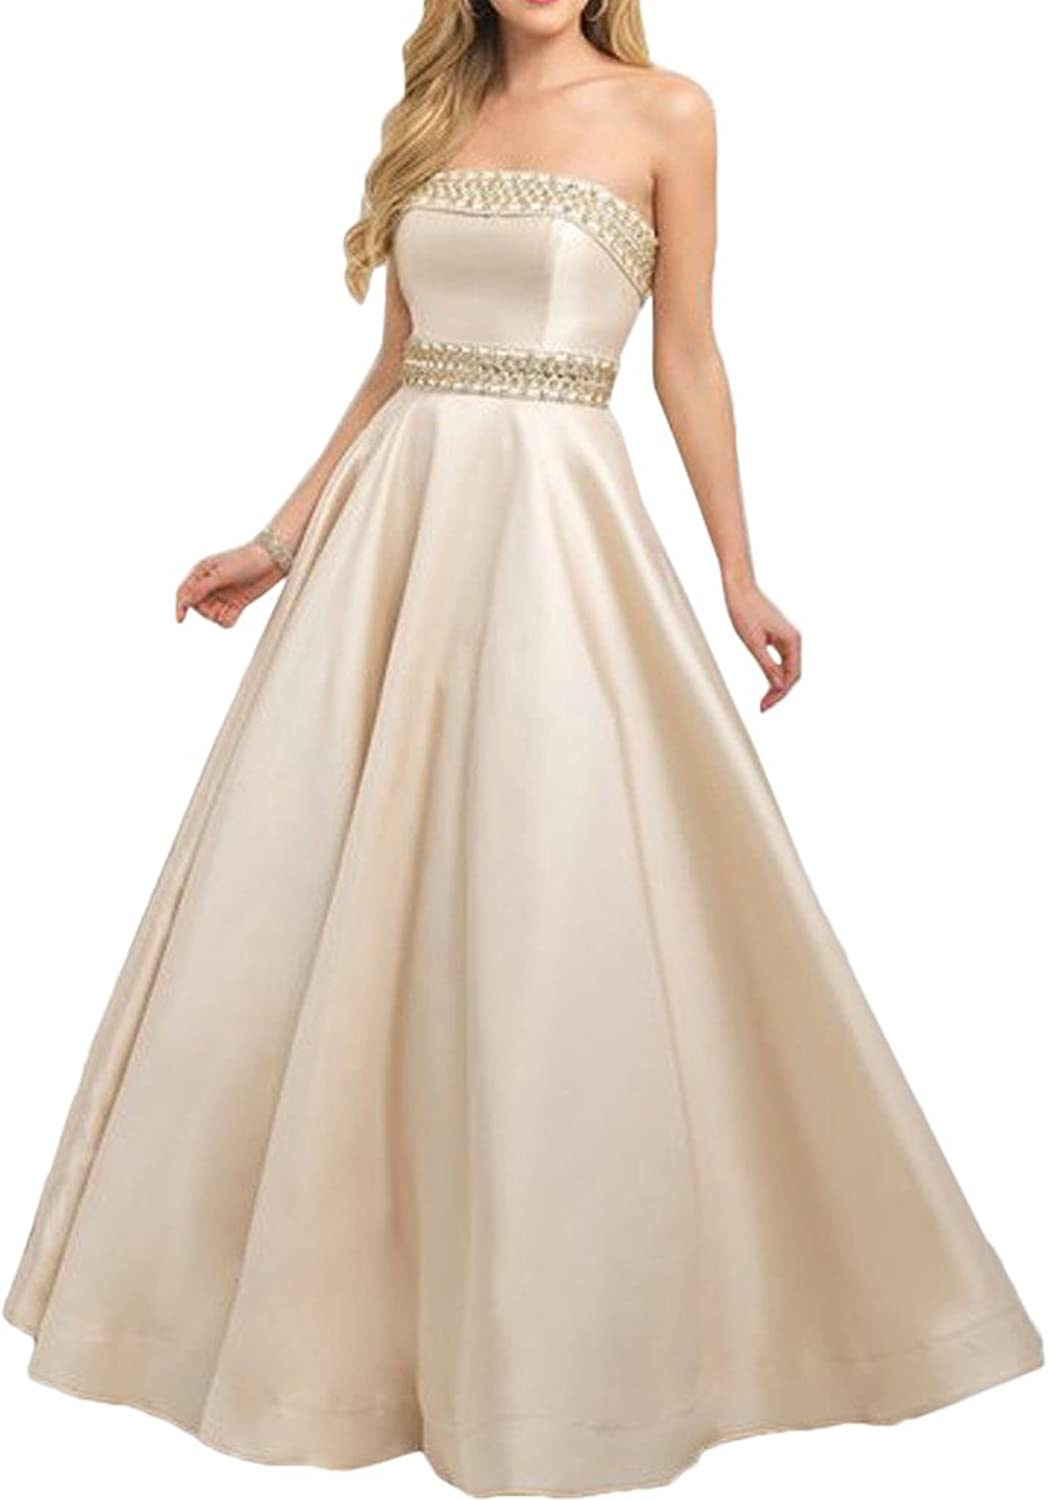 Gorgeous Bride Ball Gown Strapless Beaded Prom Evening Wedding Dresses Long